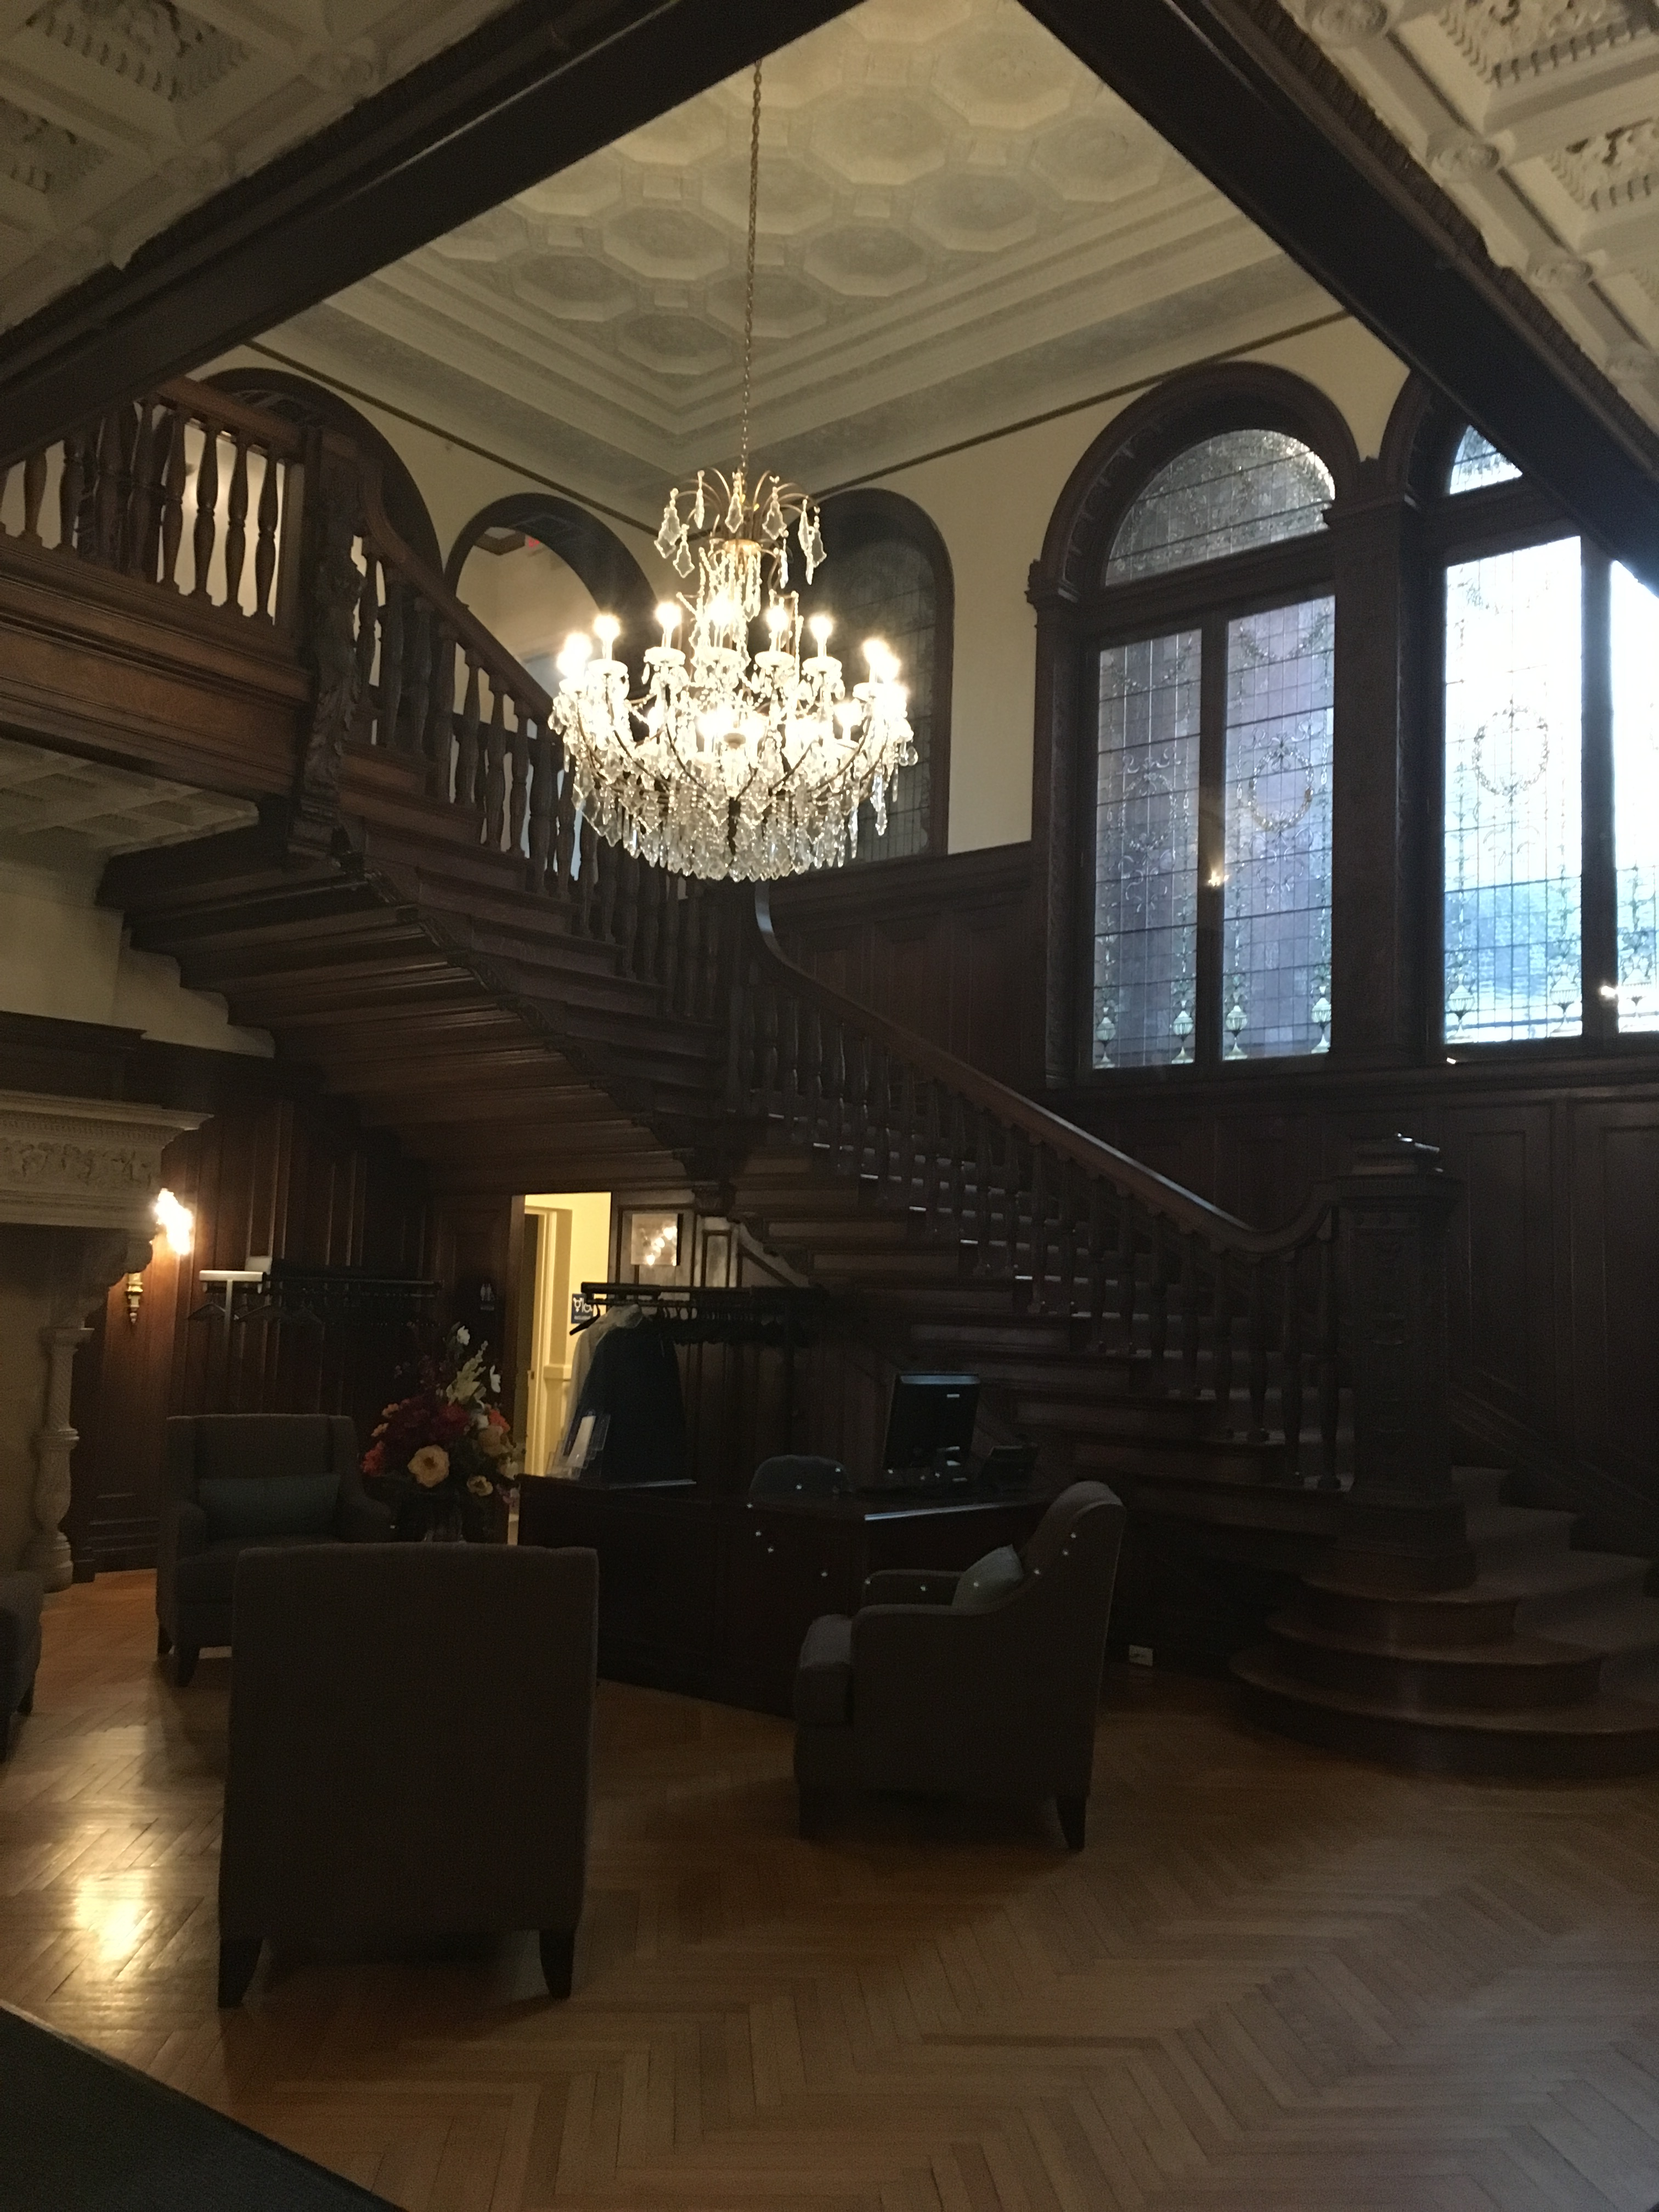 This is the foyer of Fairlawn Estate of which the elegant chandler hangs and the intricate woodwork greets each visitor.